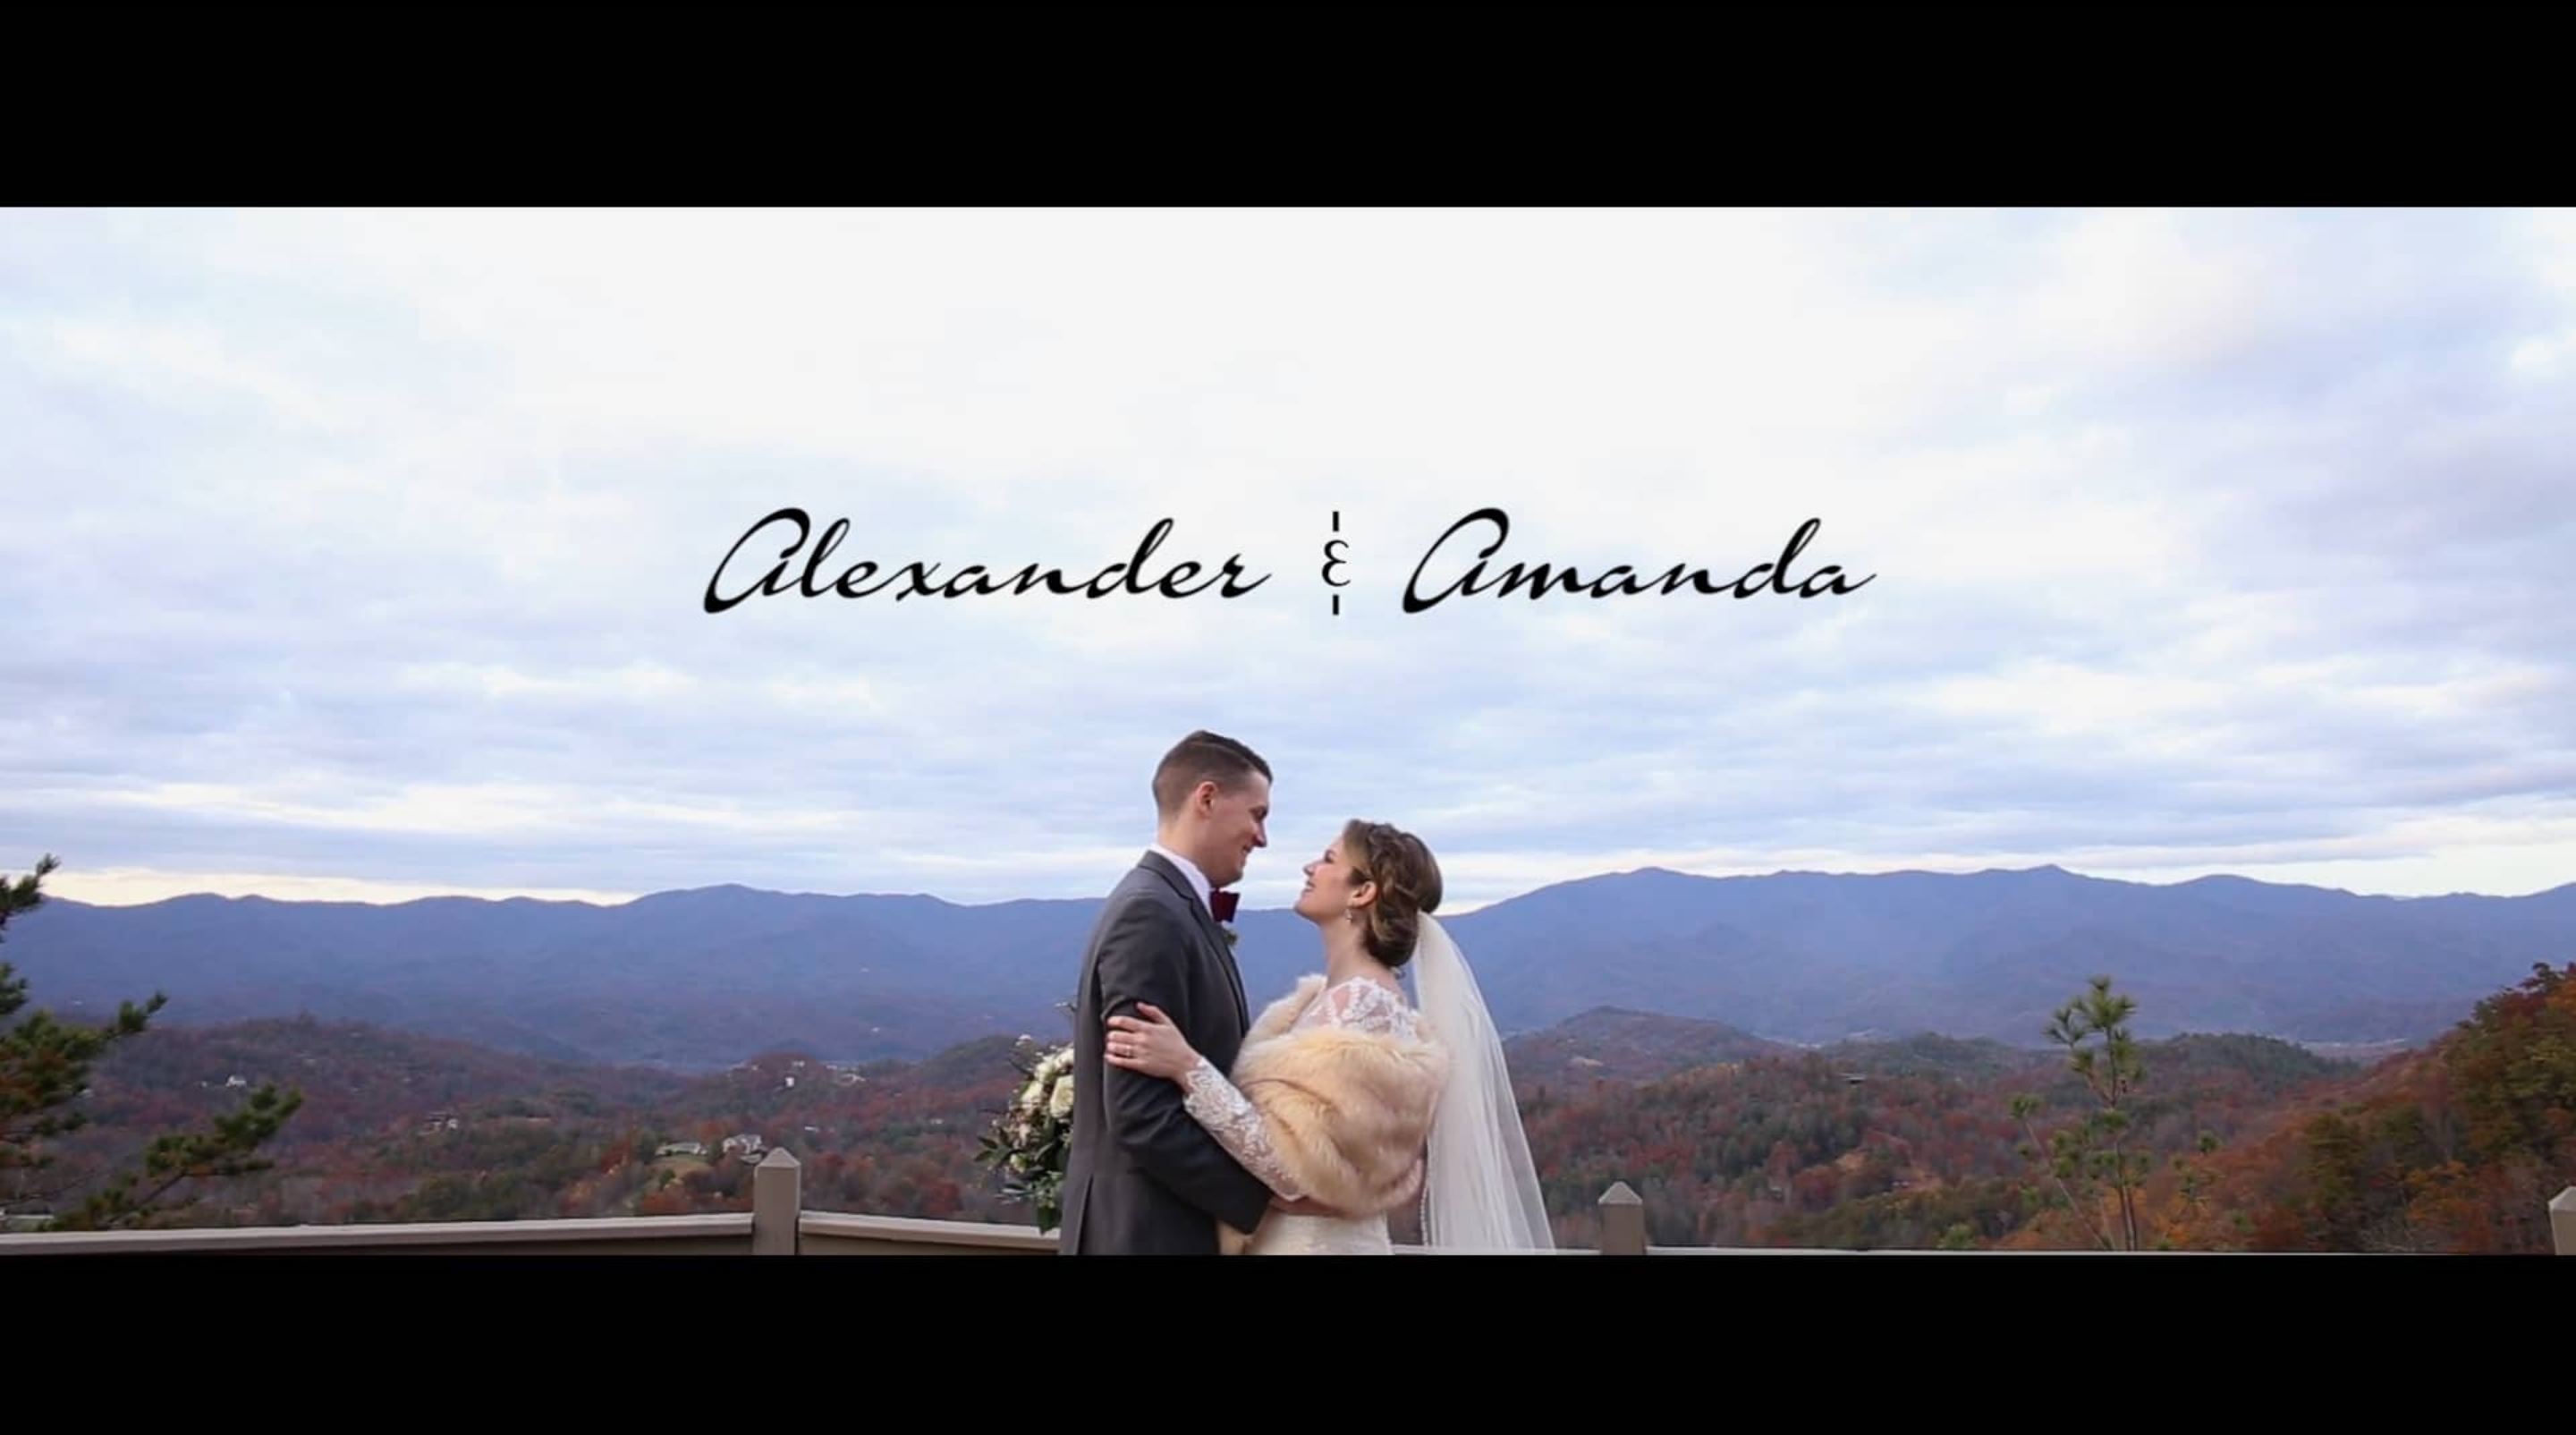 Alex + Amanda | Andrews, North Carolina | Hawkesdene Estate